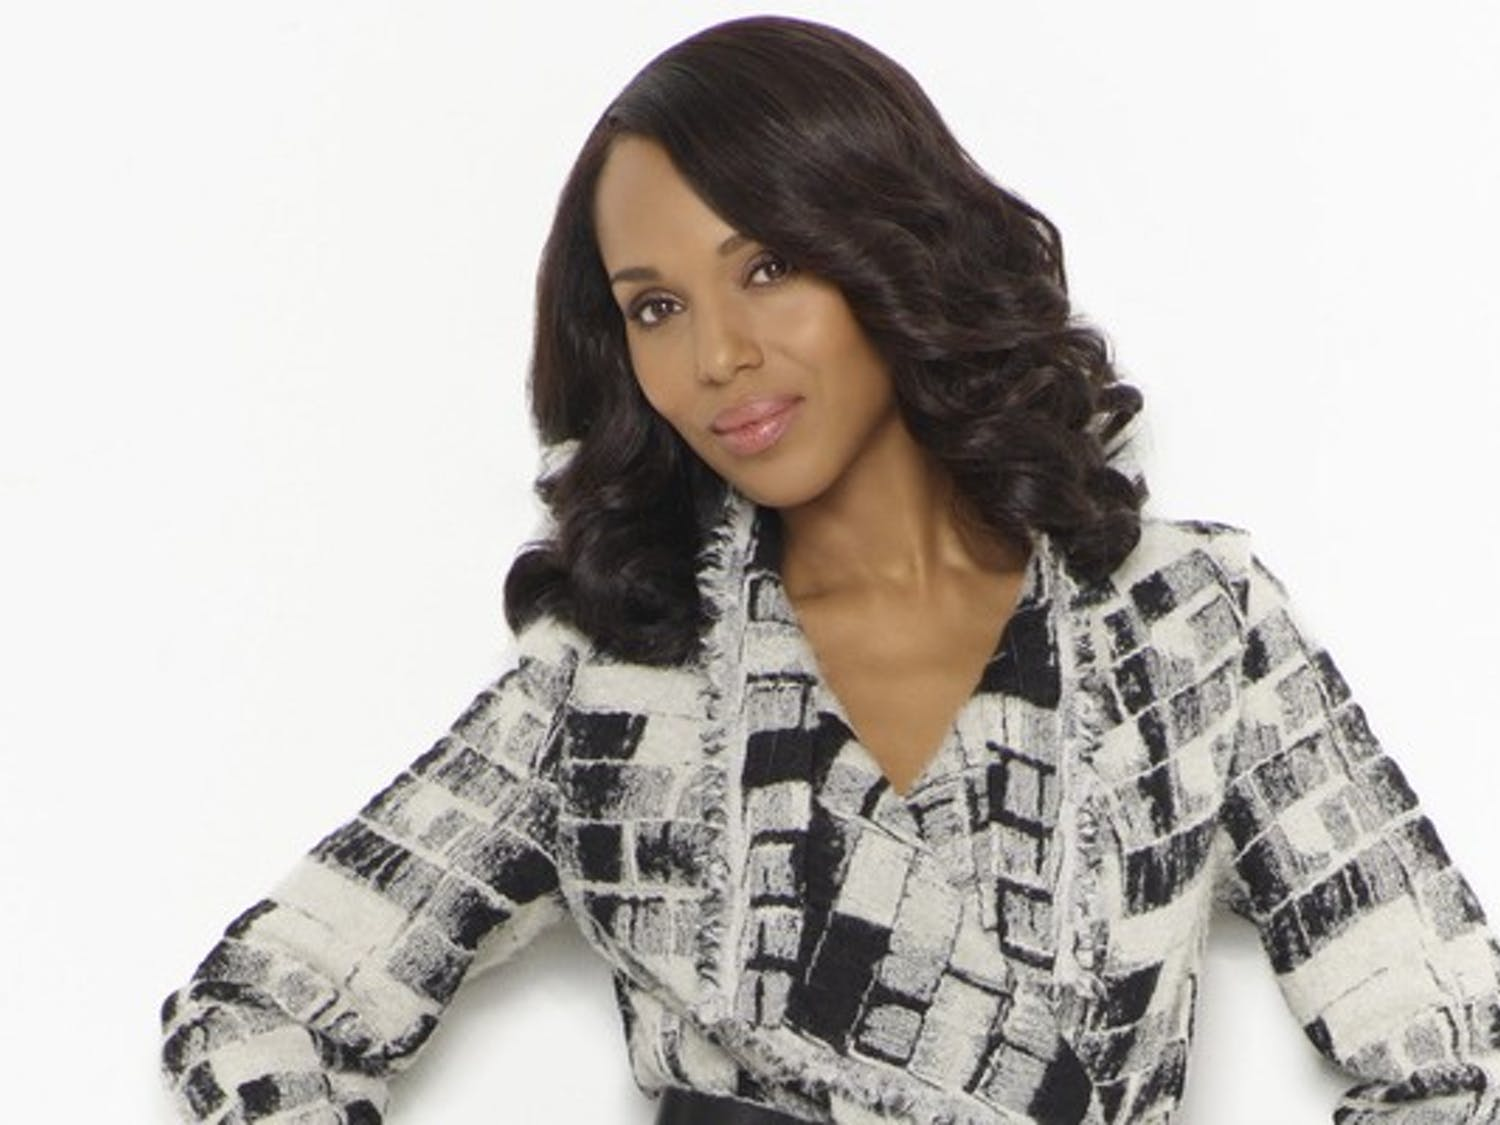 White and black are the most frequented colors in Olivia Pope's style palette, often channeled through a classic peacoat or blazer.